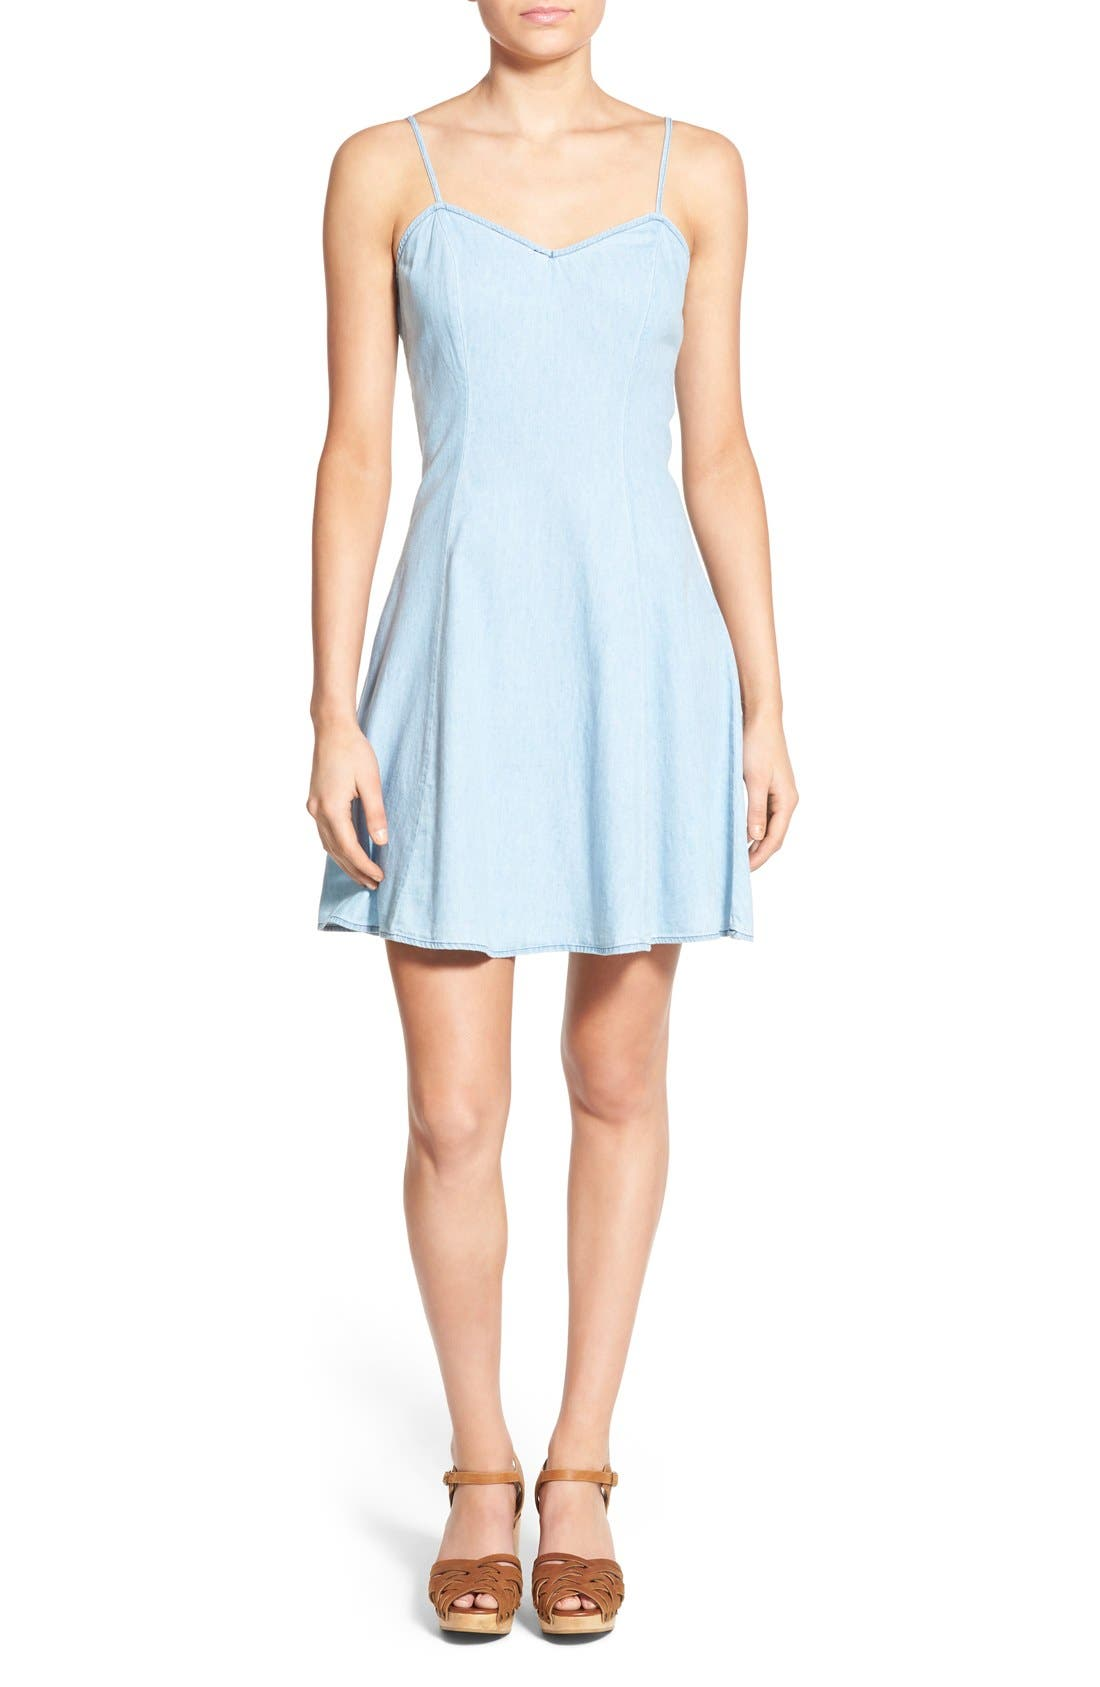 MIMI CHICA Denim Skater Dress, Main, color, 401